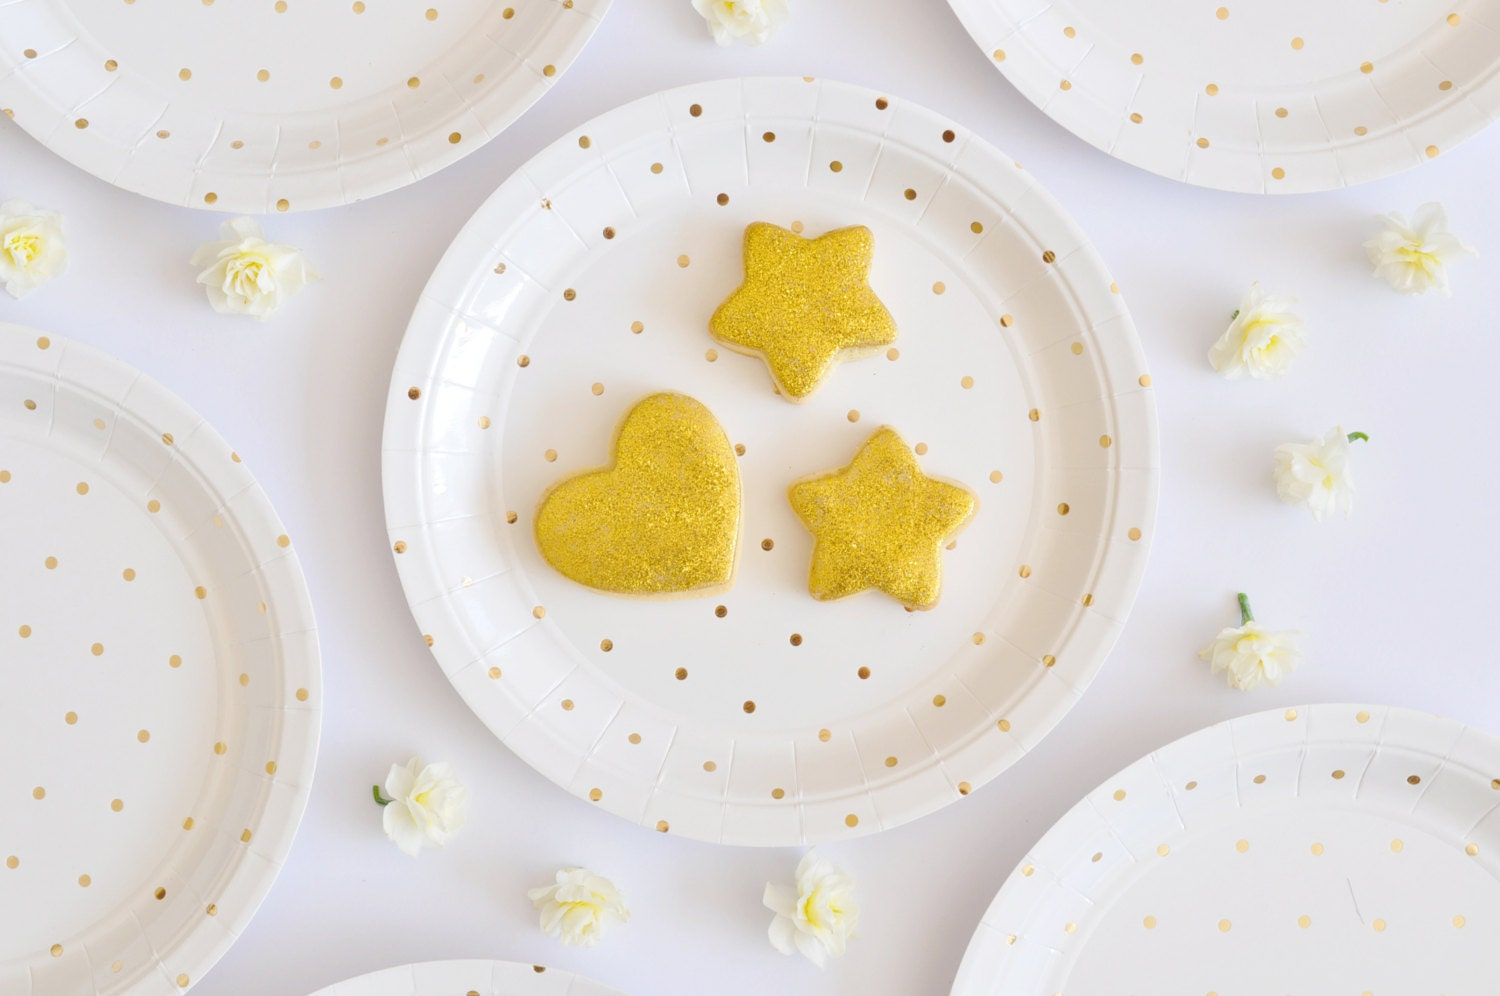 Gold Party Plates Gold Polka Dot Paper Plates Gold Plates Disposable Paper Plates Gold Party Supplies Gold Party Decorations Plates & Gold Party Plates Gold Polka Dot Paper Plates Gold Plates Disposable ...